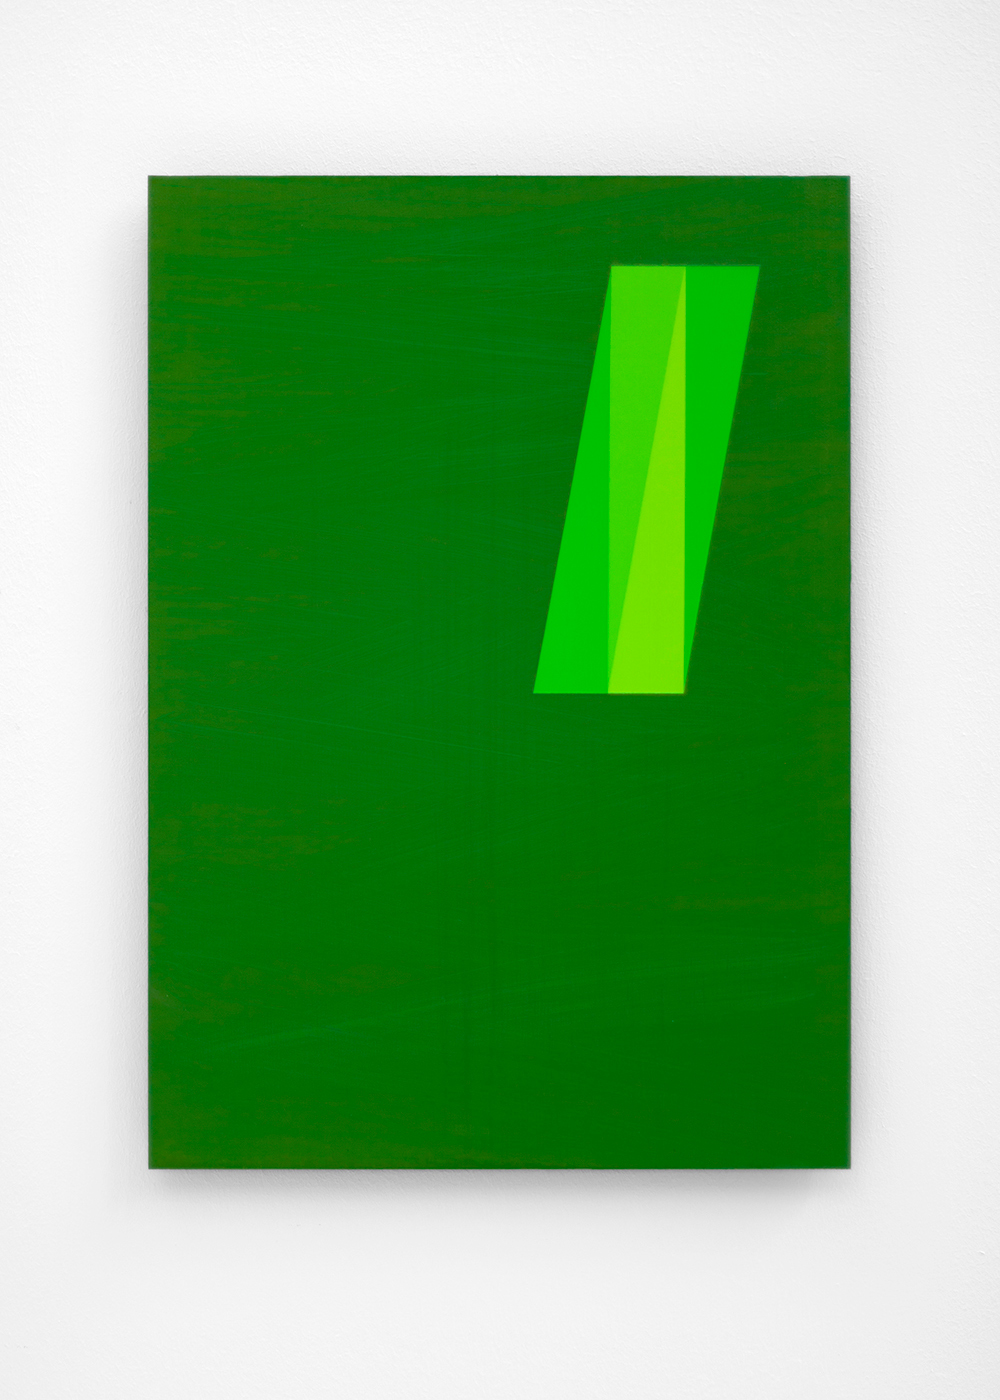 Anders Sletvold Moe.  The Green Series # 16 , 2018. Oil and acrylic on plexi glass. 11.69 x 16.53 inches